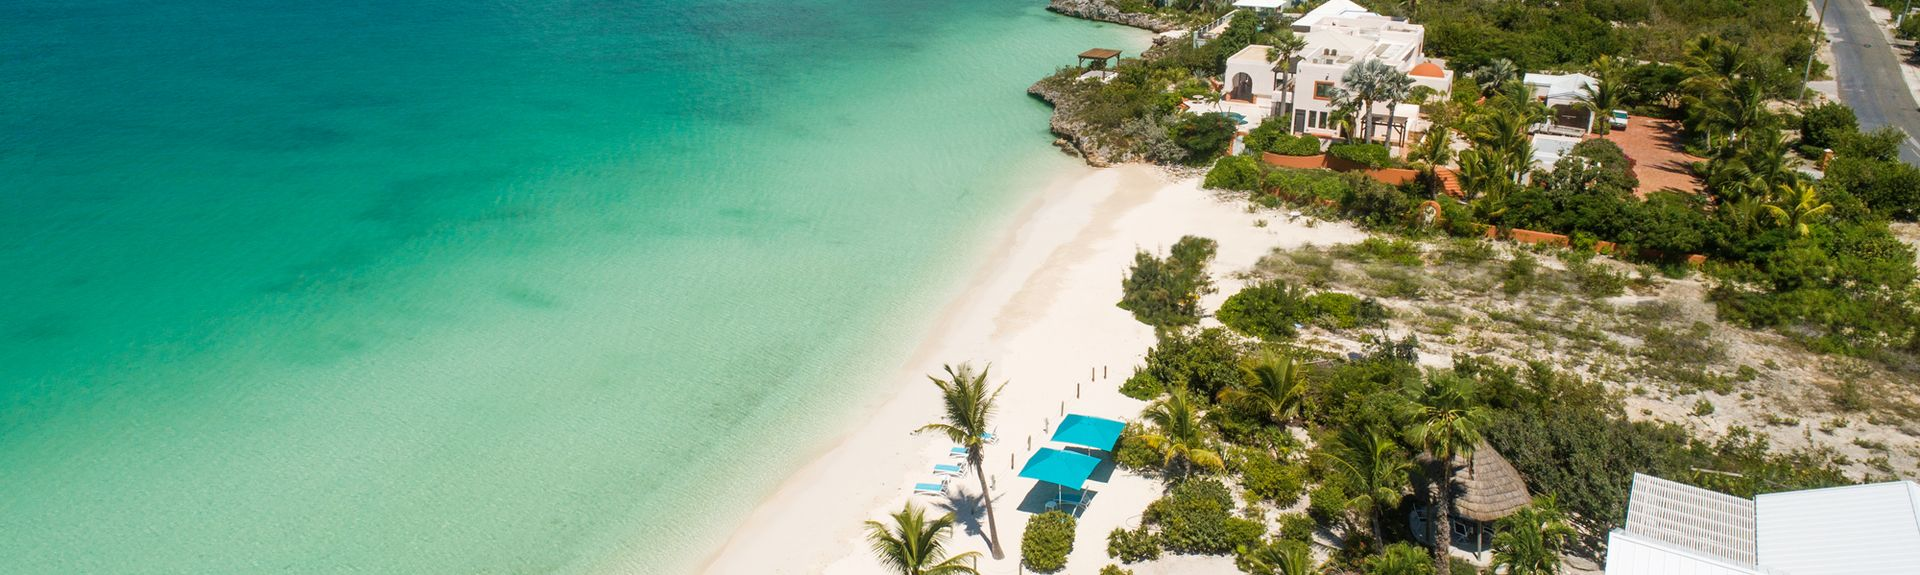 Caicos Islands, Turks and Caicos Islands